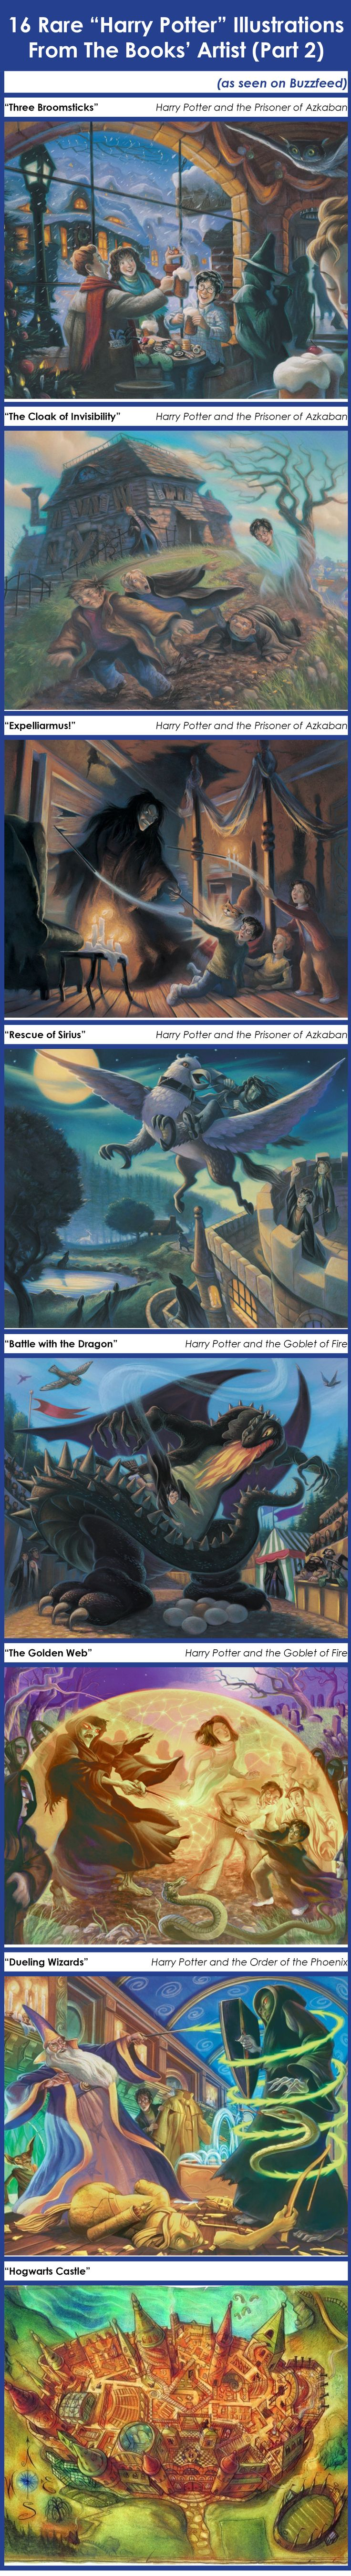 16 Rare Harry Potter Illustrations From The Books' Artist (PART 2)